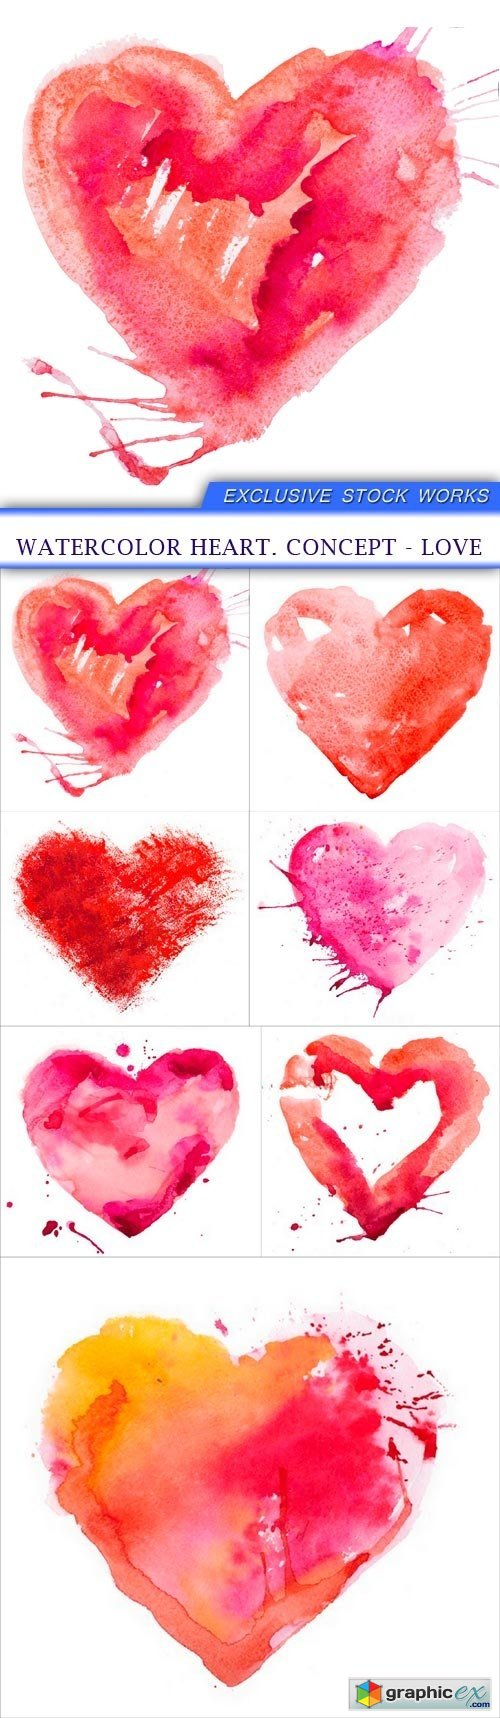 watercolor heart. Concept - love 7X JPEG